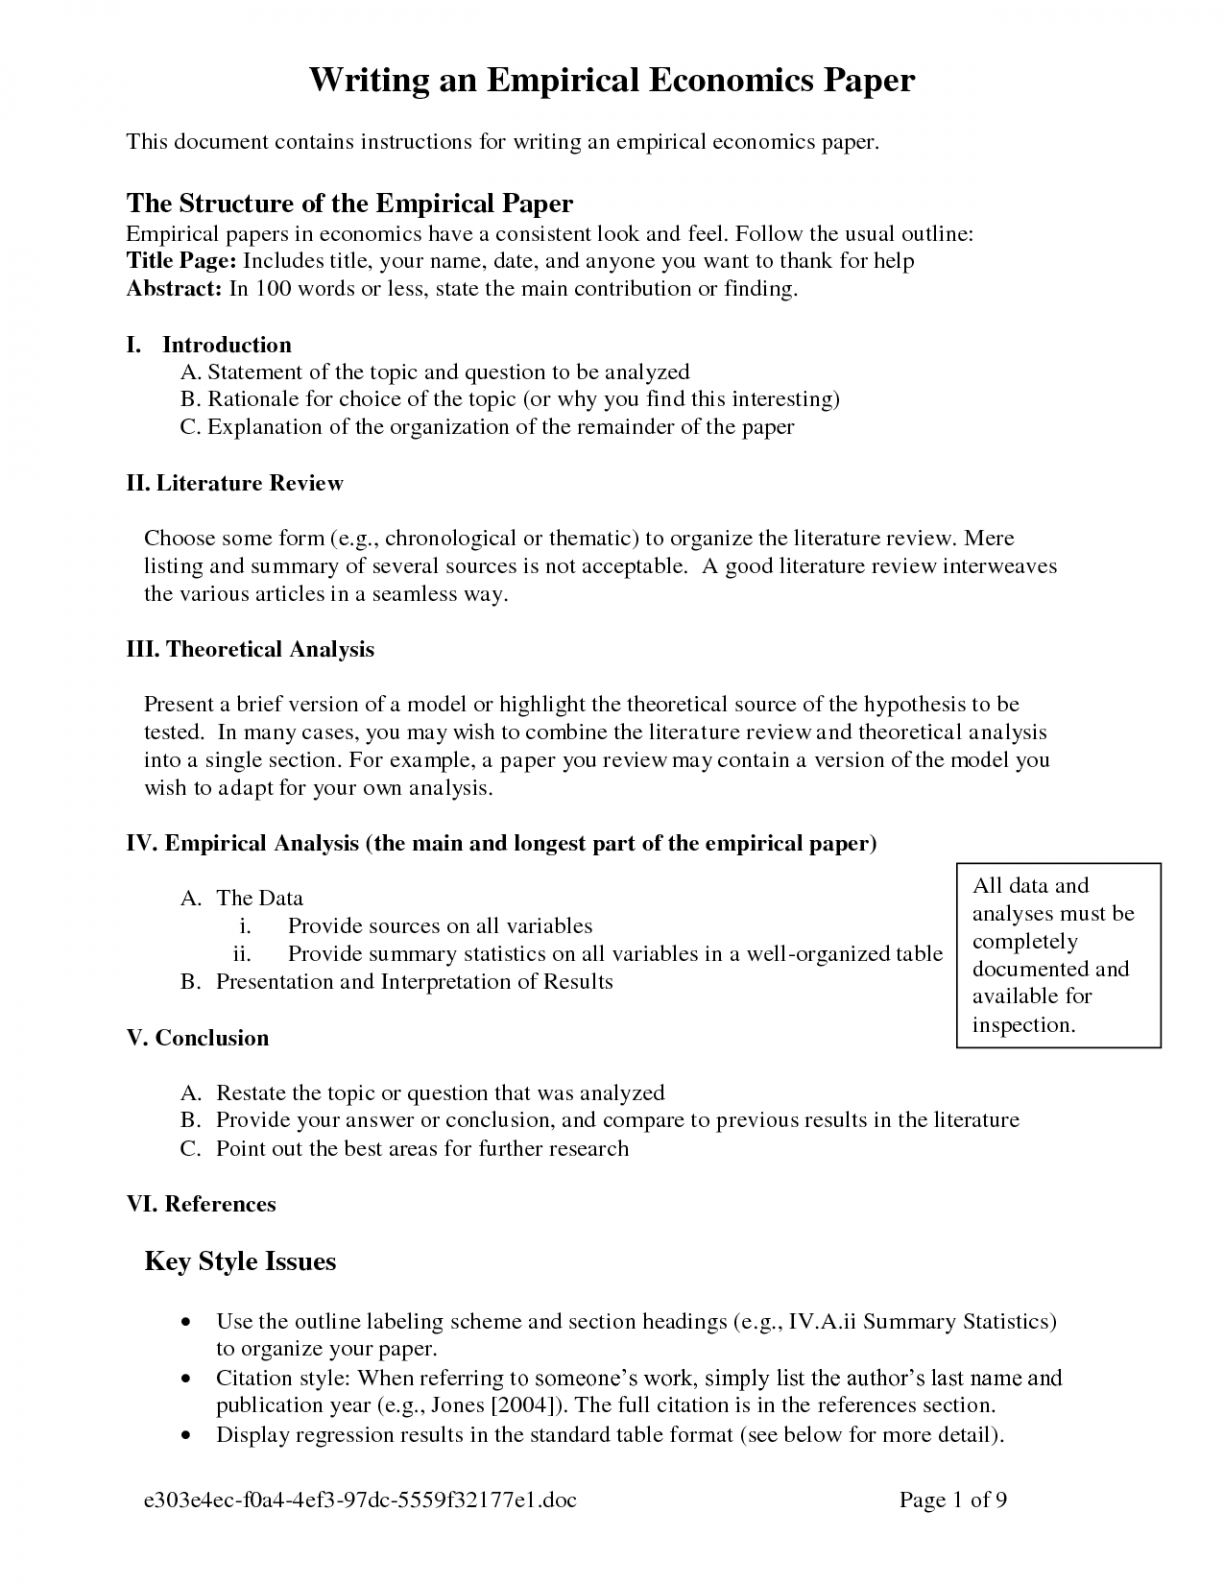 017 Research Paper Format For Apa Style Dissertationple Essay Papers Proposal Methods Section Custom Lovely Top A Sample Outline Introduction - Template Full